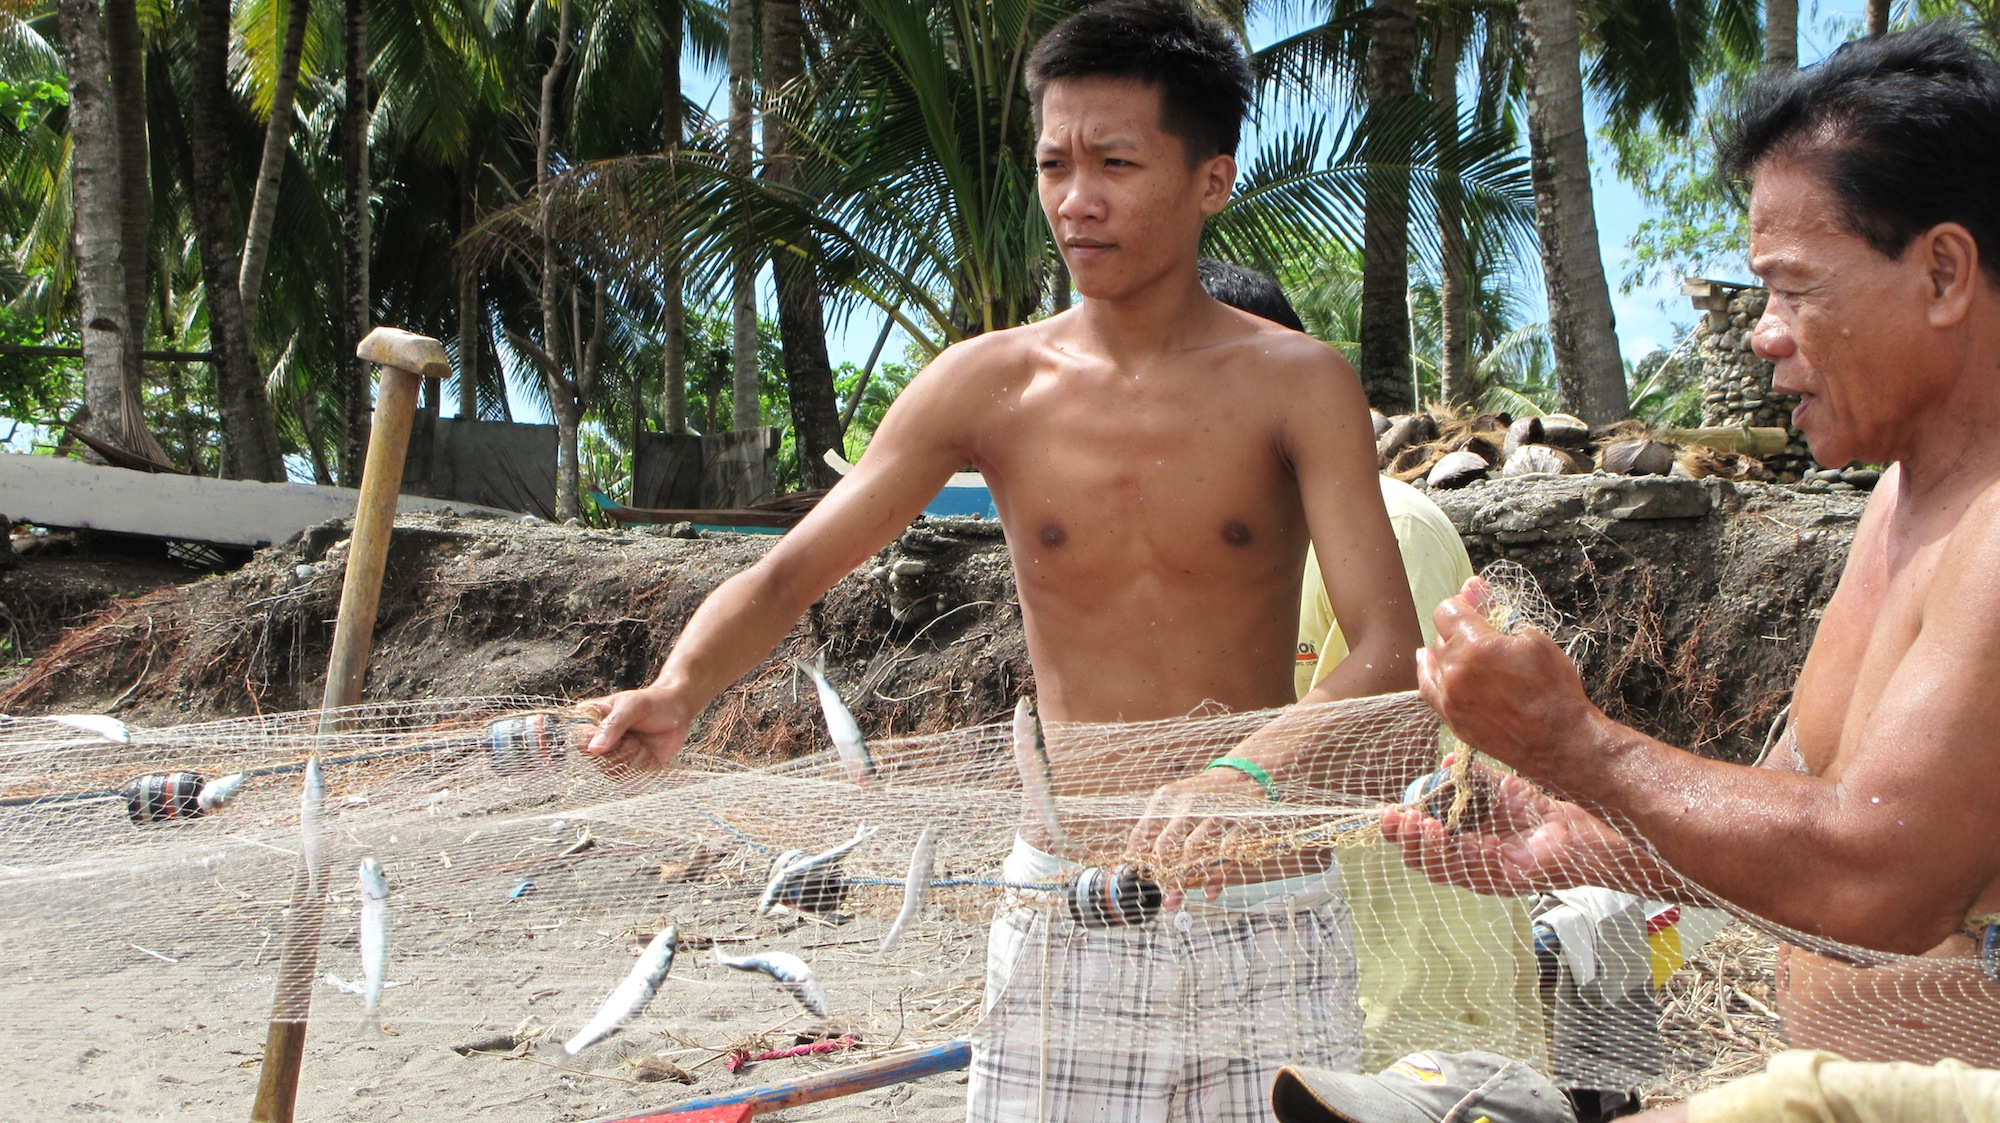 Fishers in Amlan, Philippines haul in their catch.